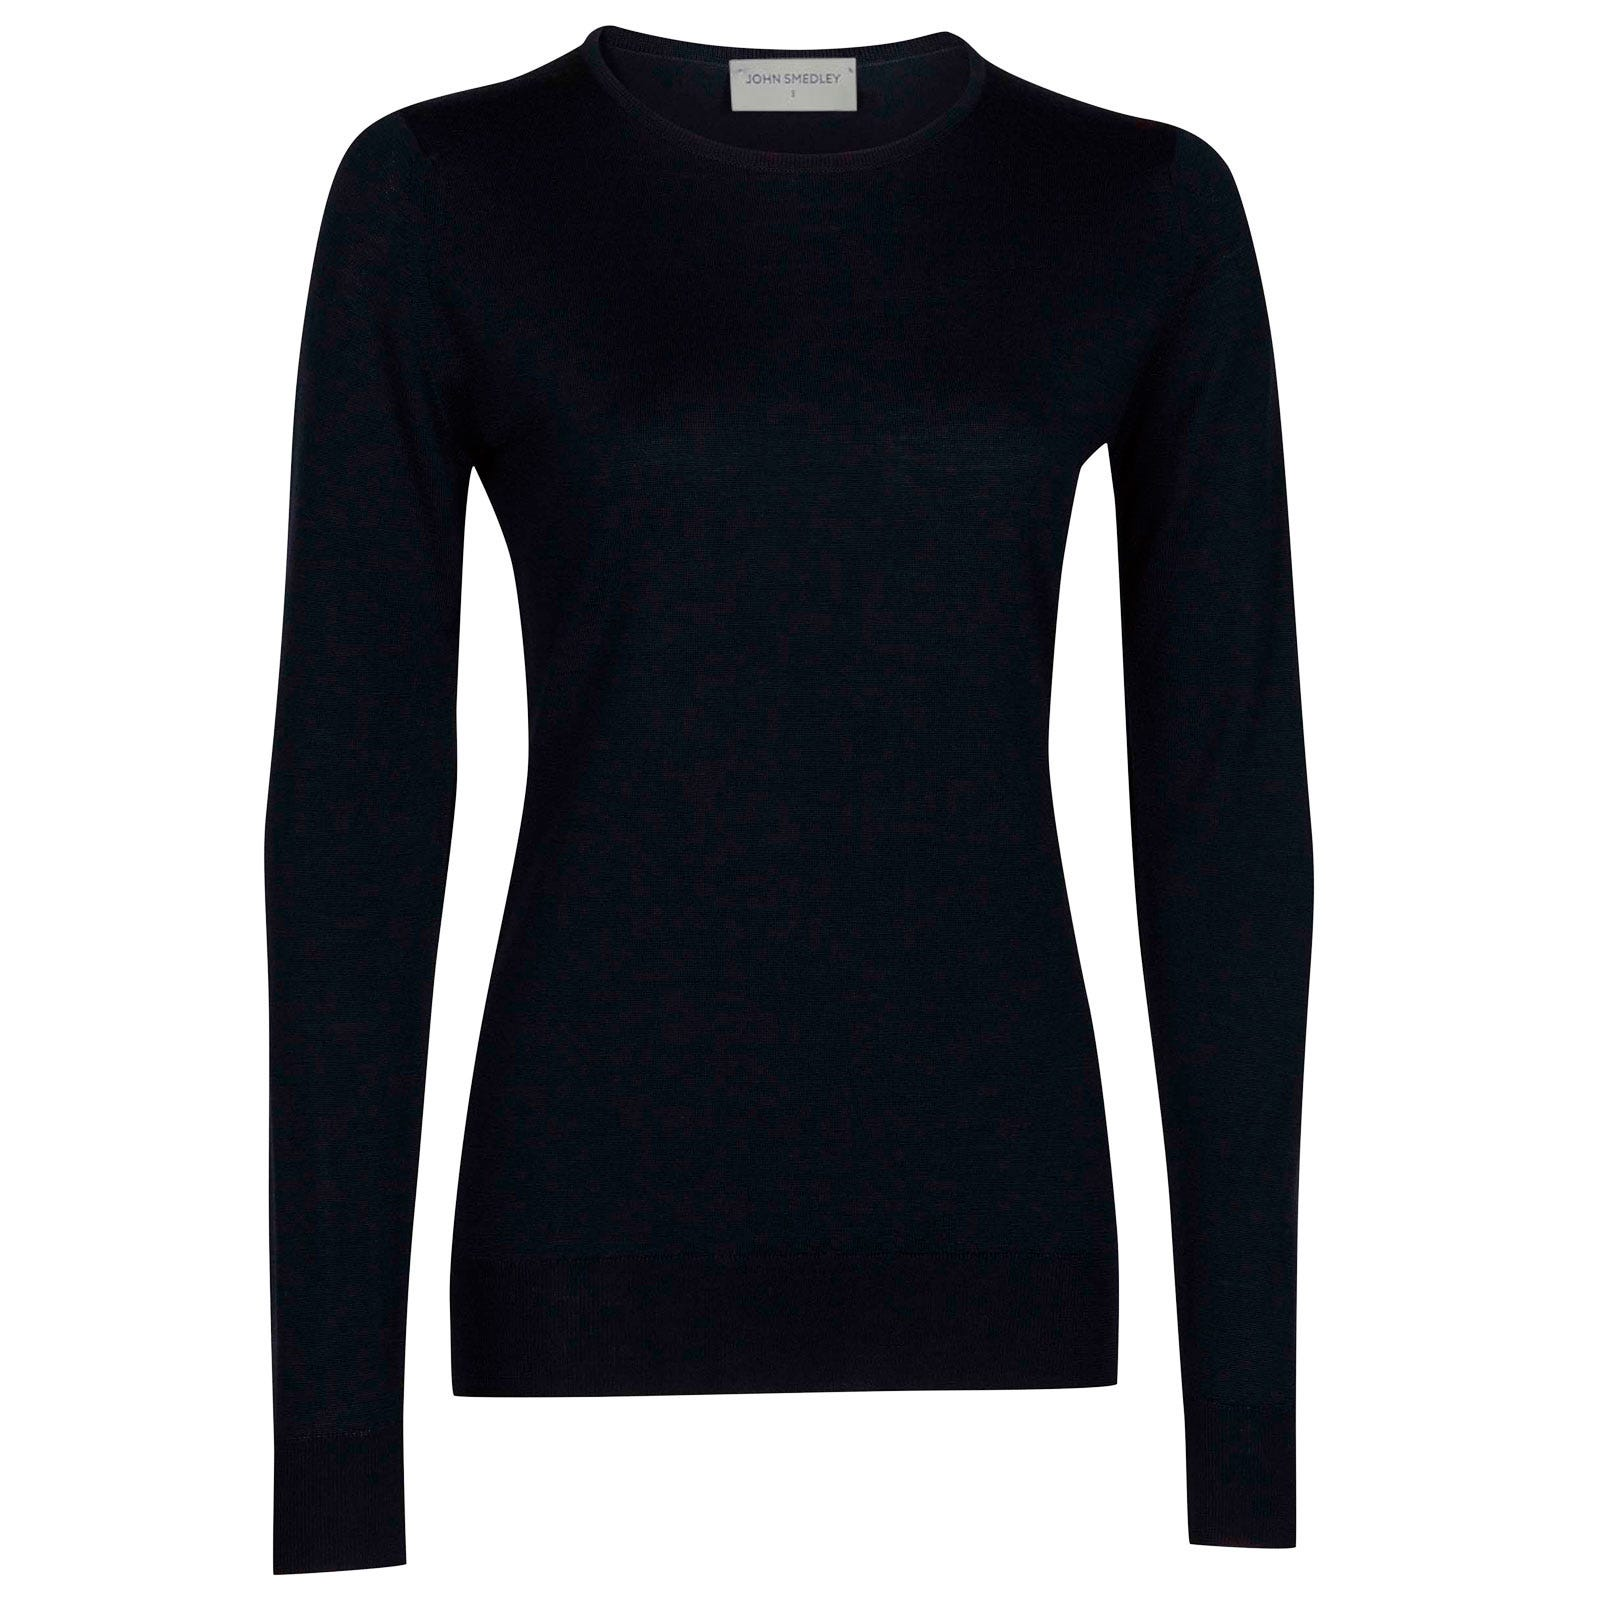 John Smedley geranium Merino Wool Sweater in Midnight-S